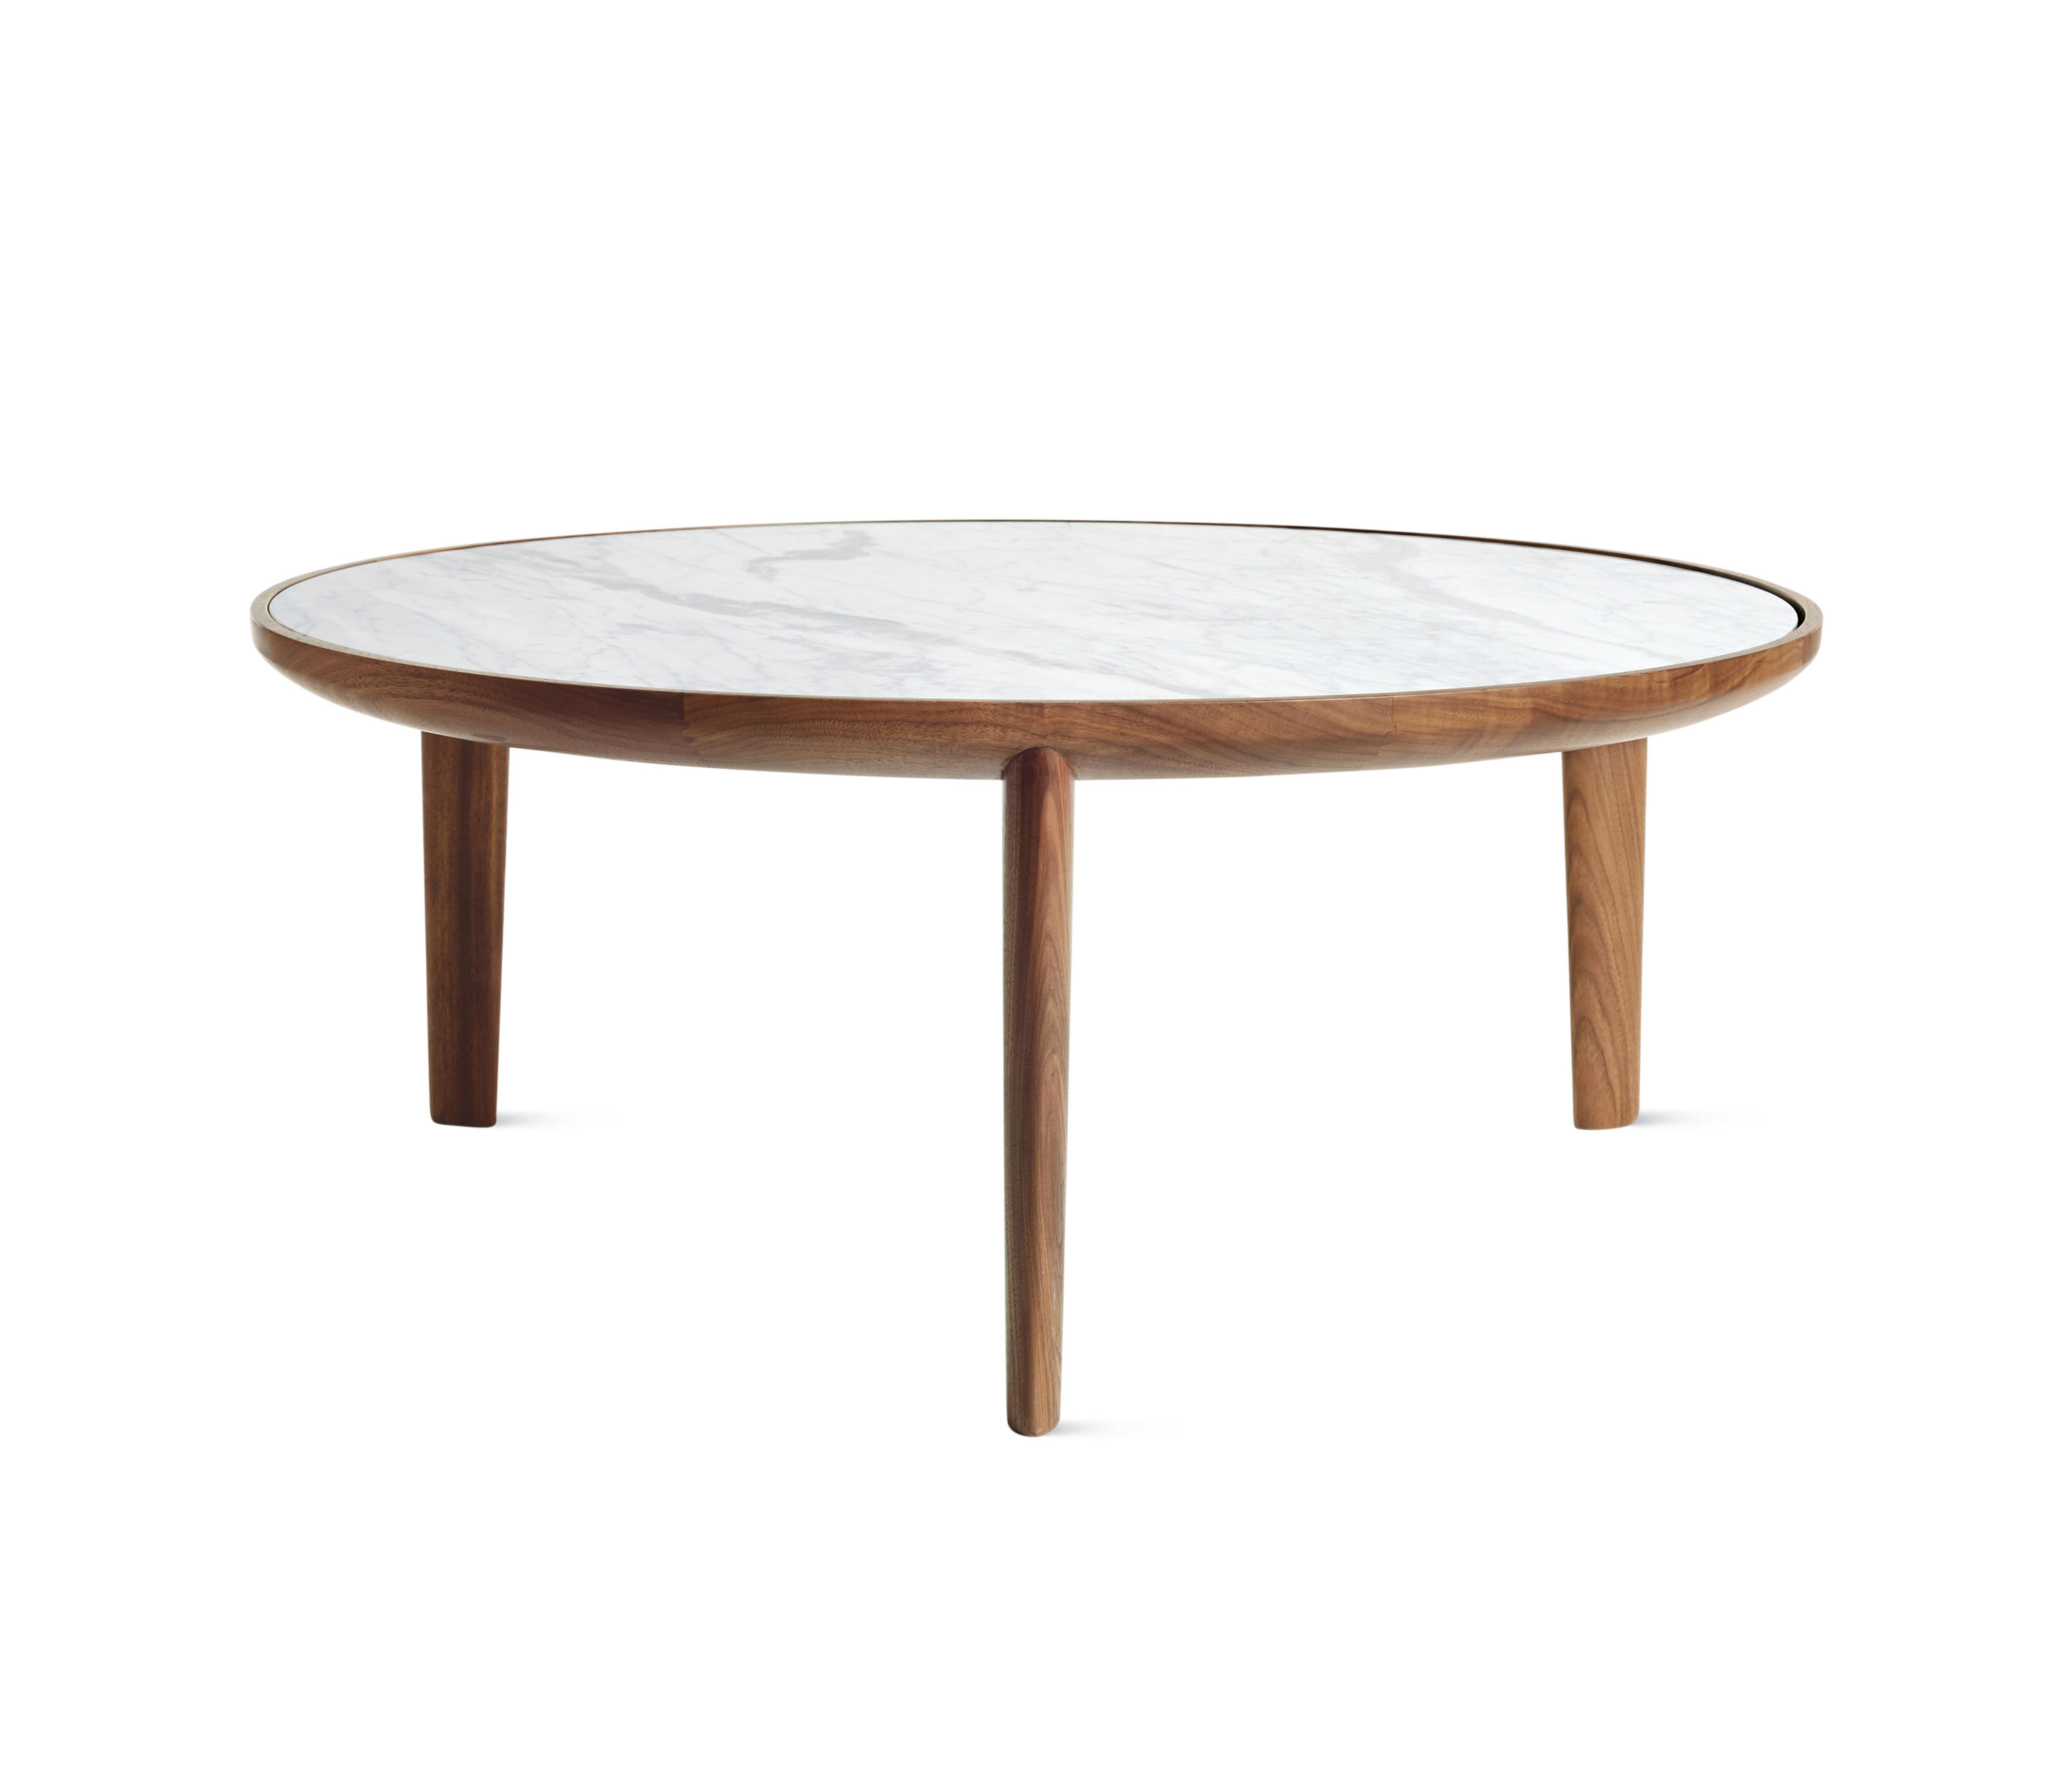 coffee table design within reach photo - 7